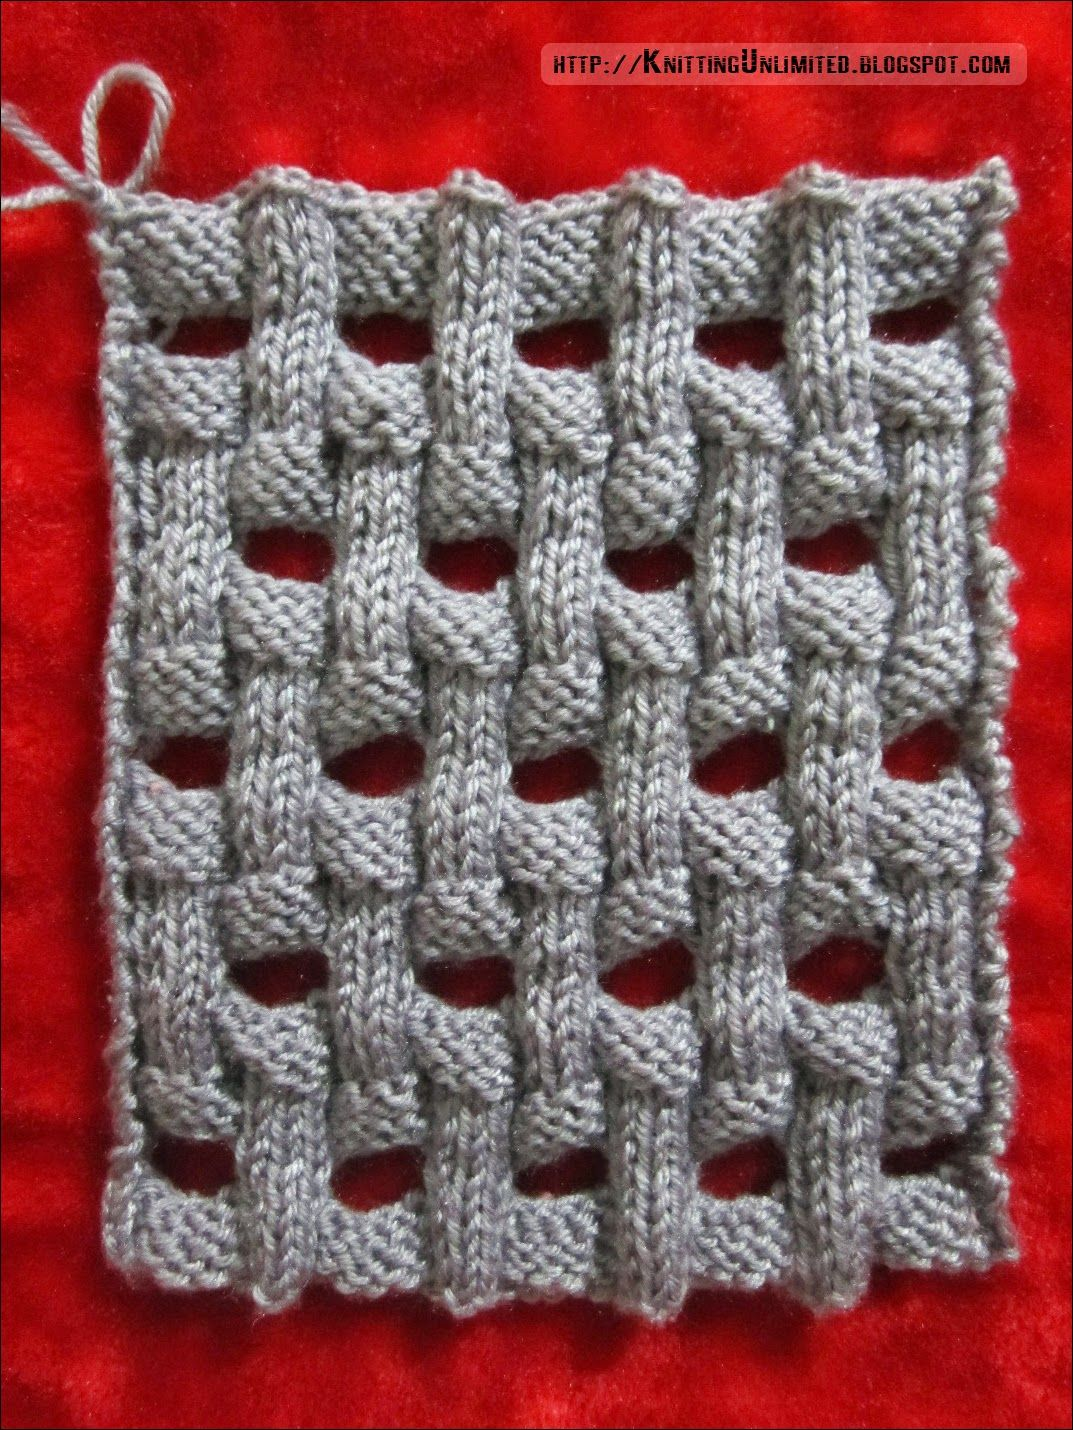 How to knit crochet openwork patterns 88